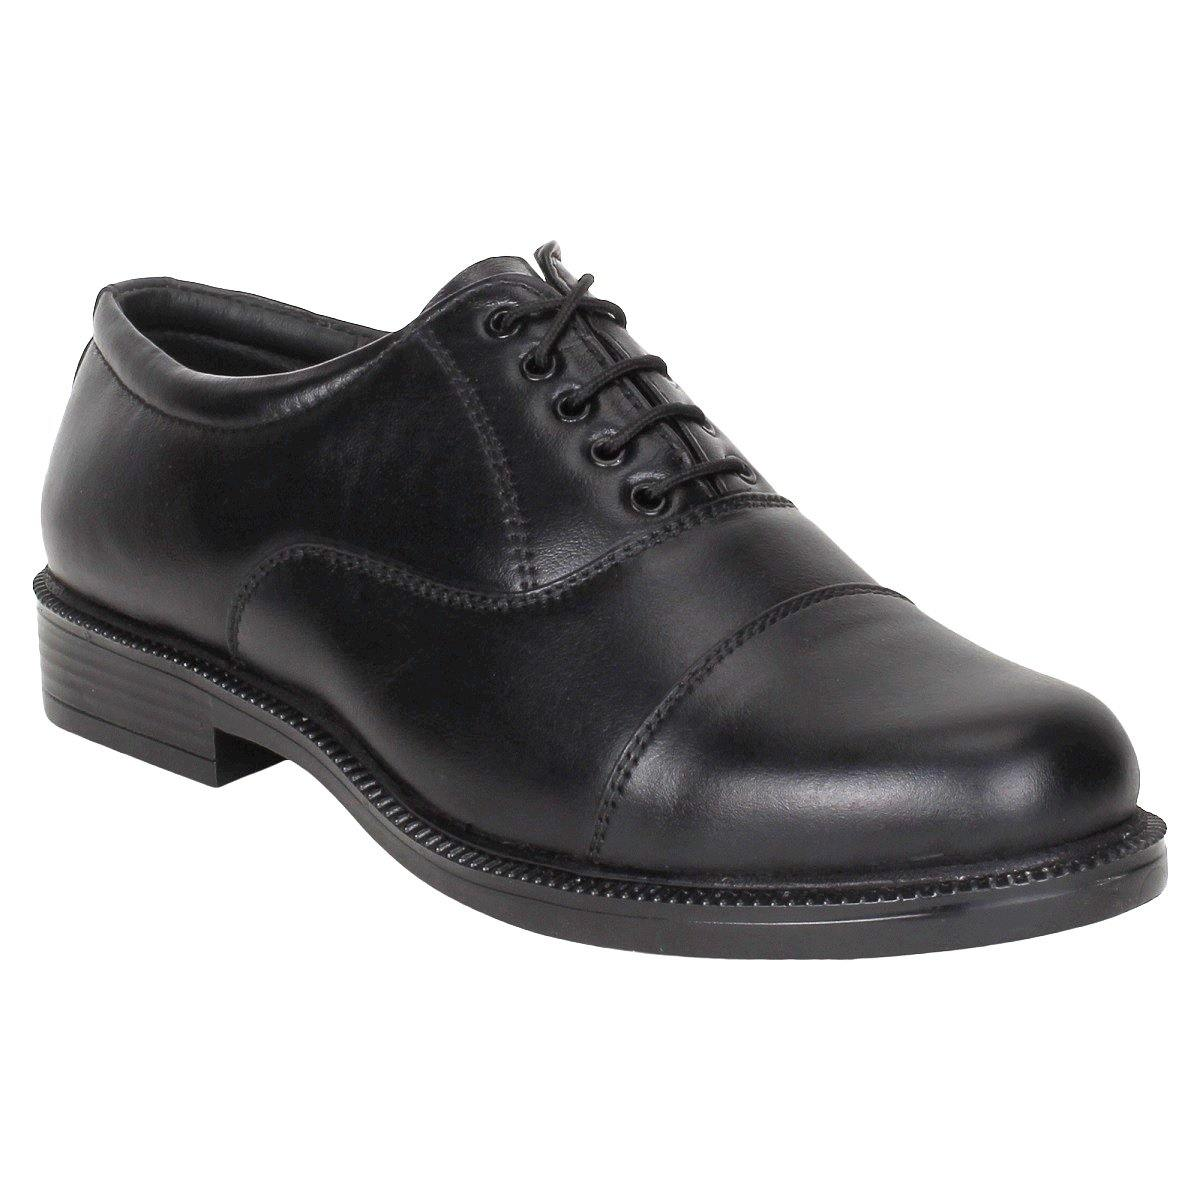 Police Shoes for Men